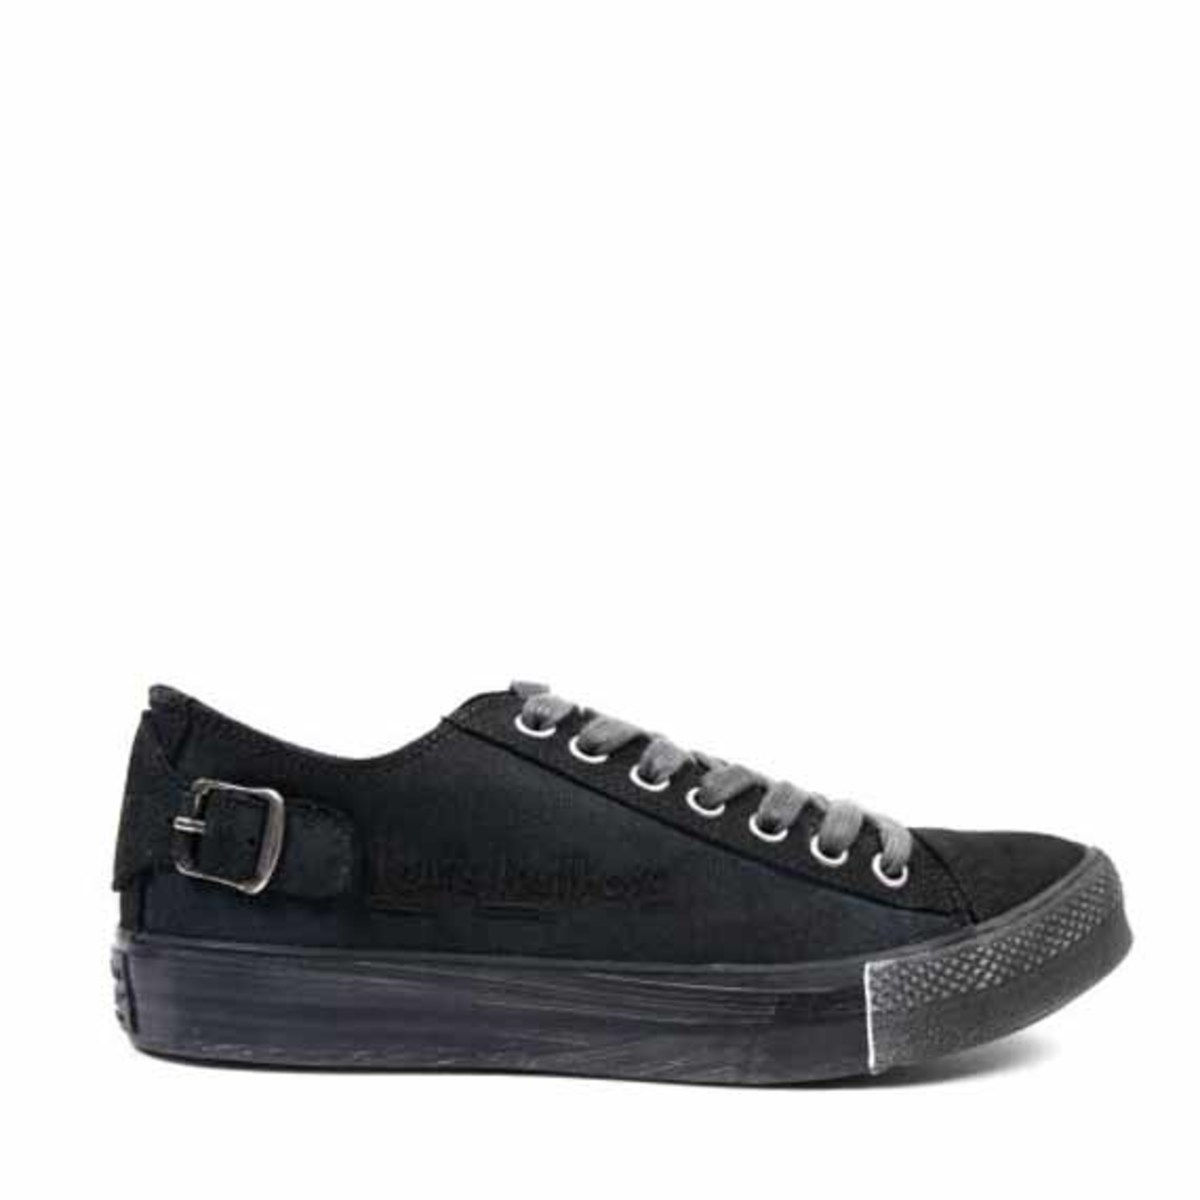 cdg-lewis-leather-1